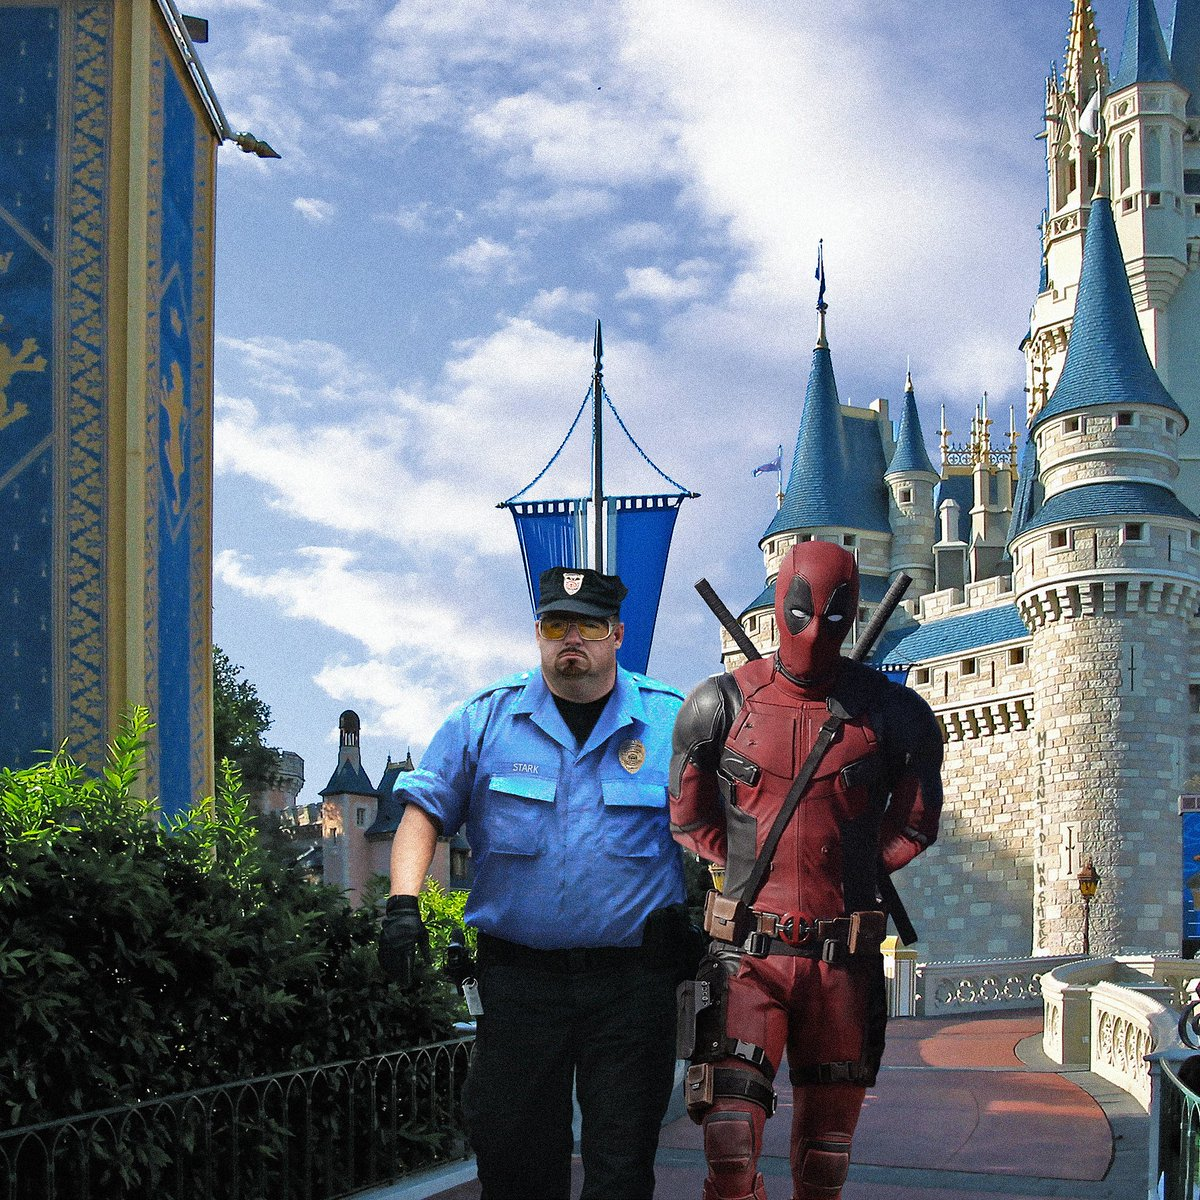 Ryan Reynolds Trolls Disney With This Cheeky Deadpool Photo